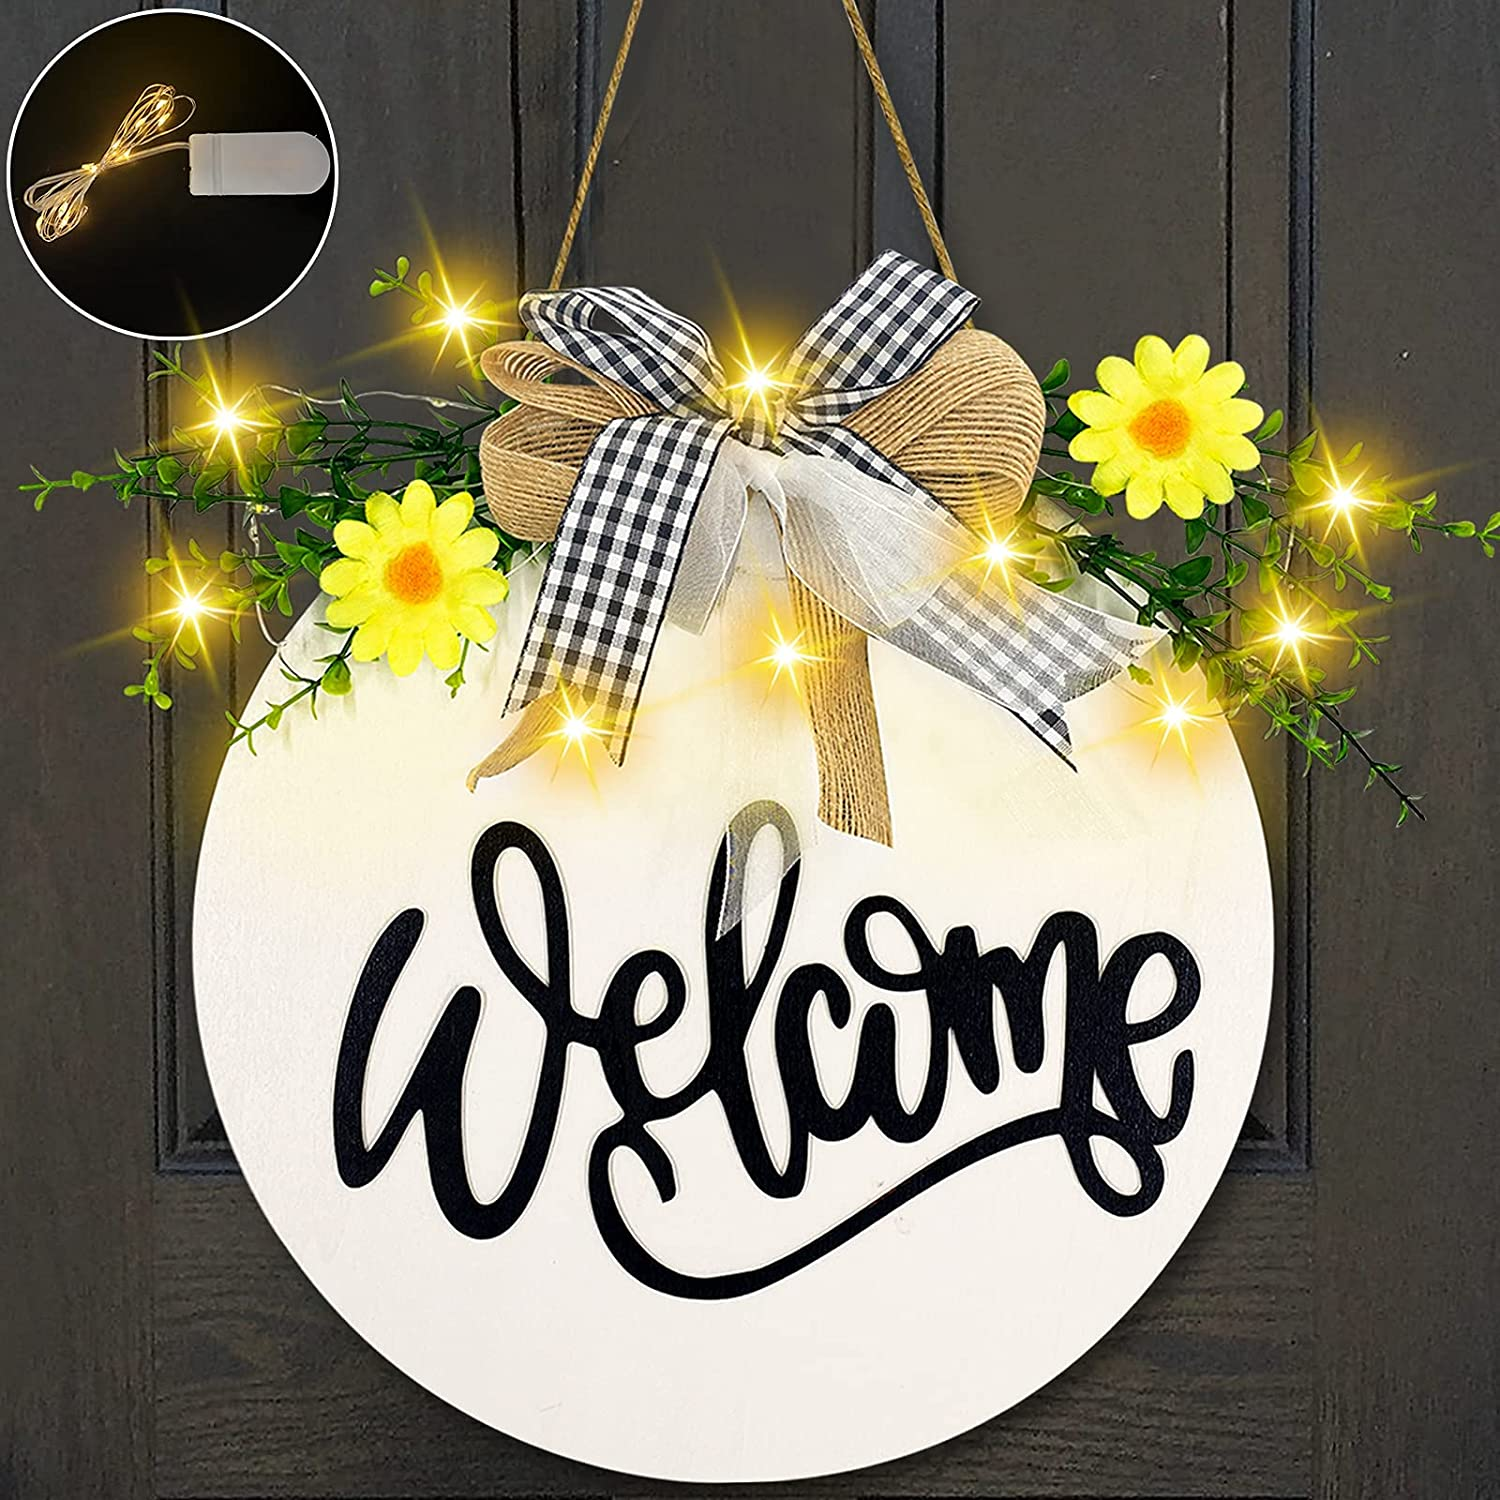 TURNMEON Lighted Welcome Wreath Sign Front Porch Door Decor with Lights Daisy Eucalyptus Spring Summer Rustic Round Wooden Hello Sign Hanging Outdoor Home Wall Farmhouse Porch Decor Housewarming Gift